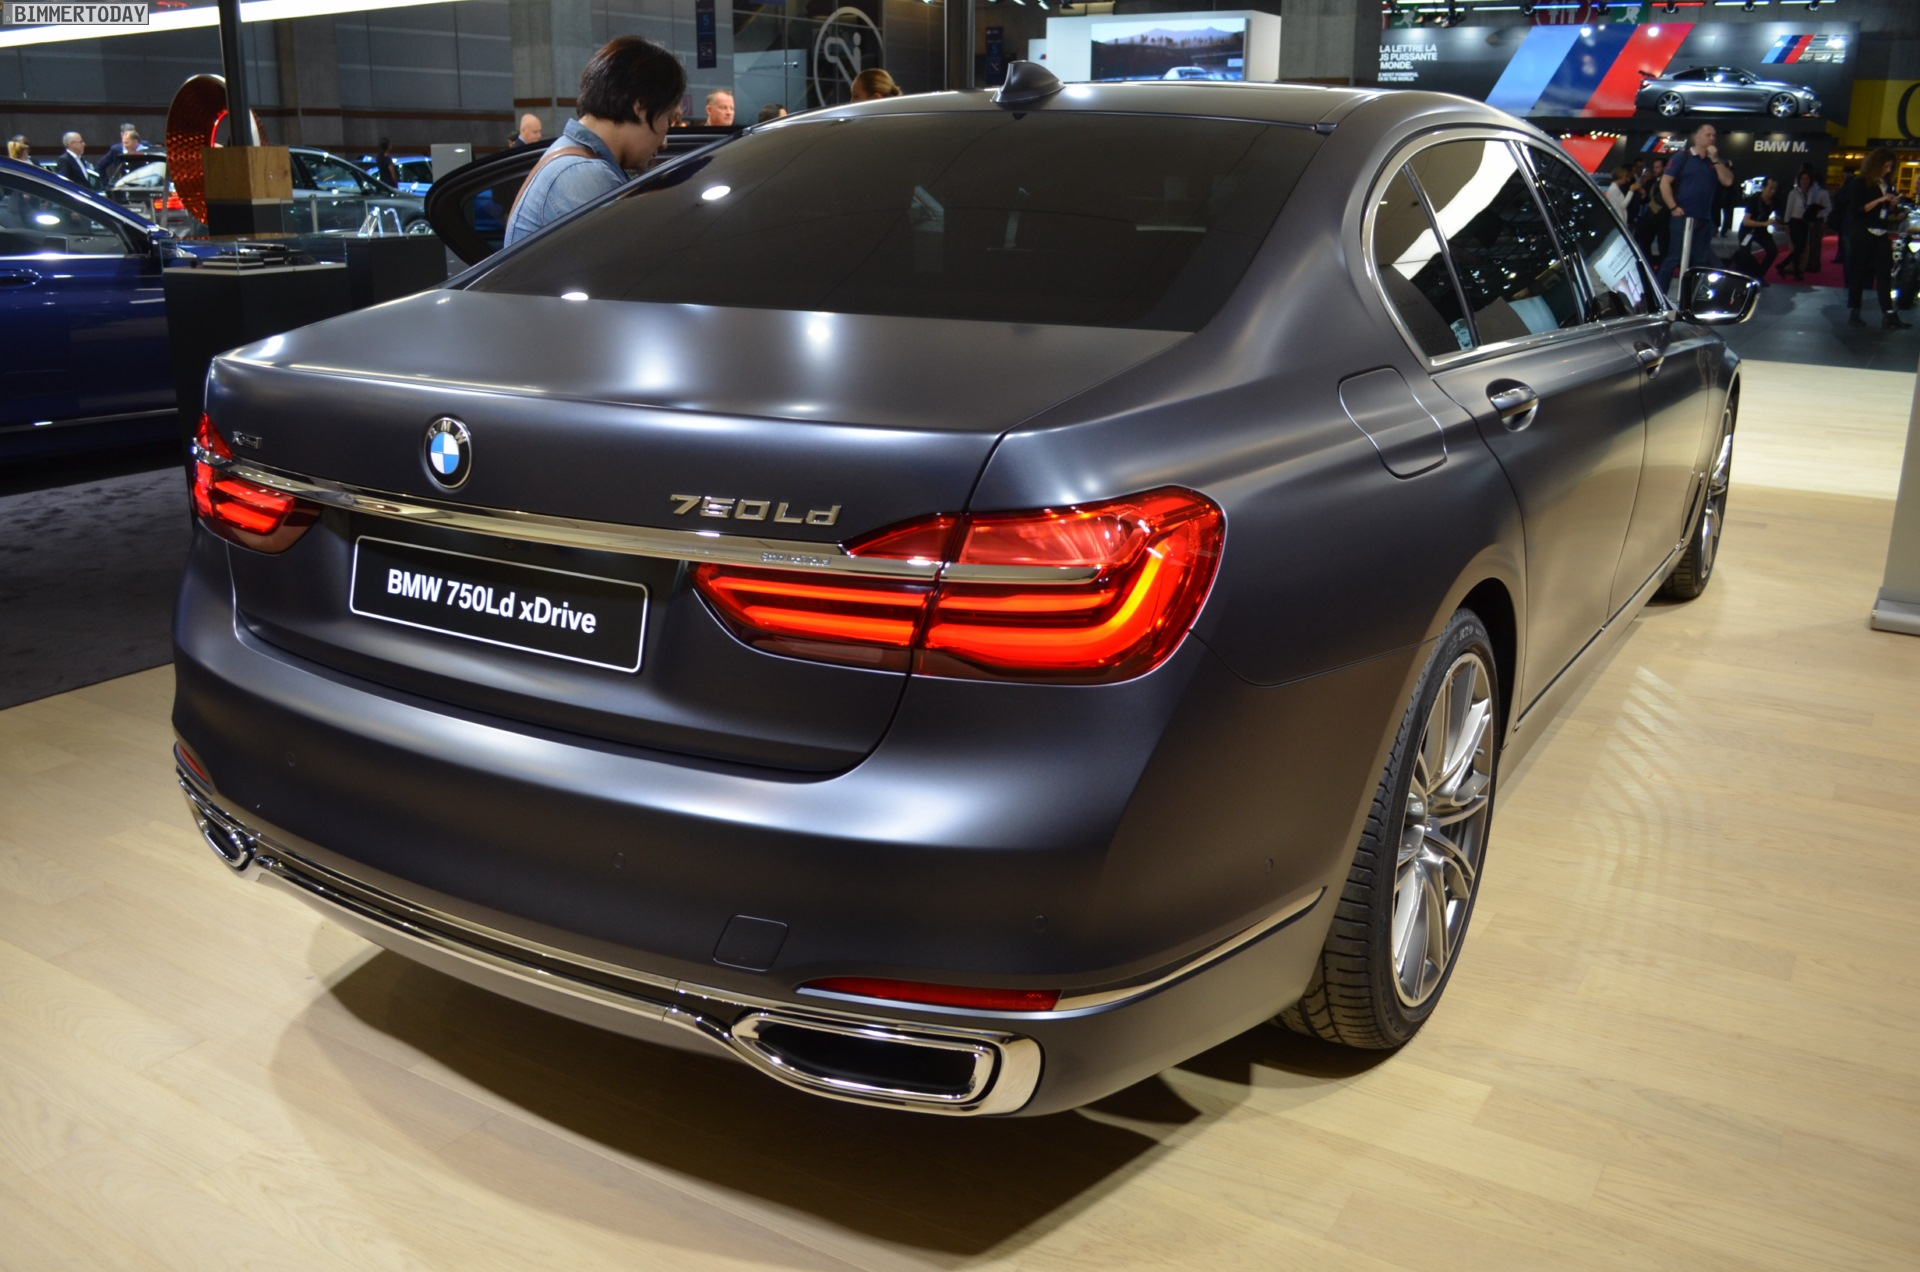 2017 Bmw 750d Quad Turbo Diesel Debuted In Frozen Arctic Grey